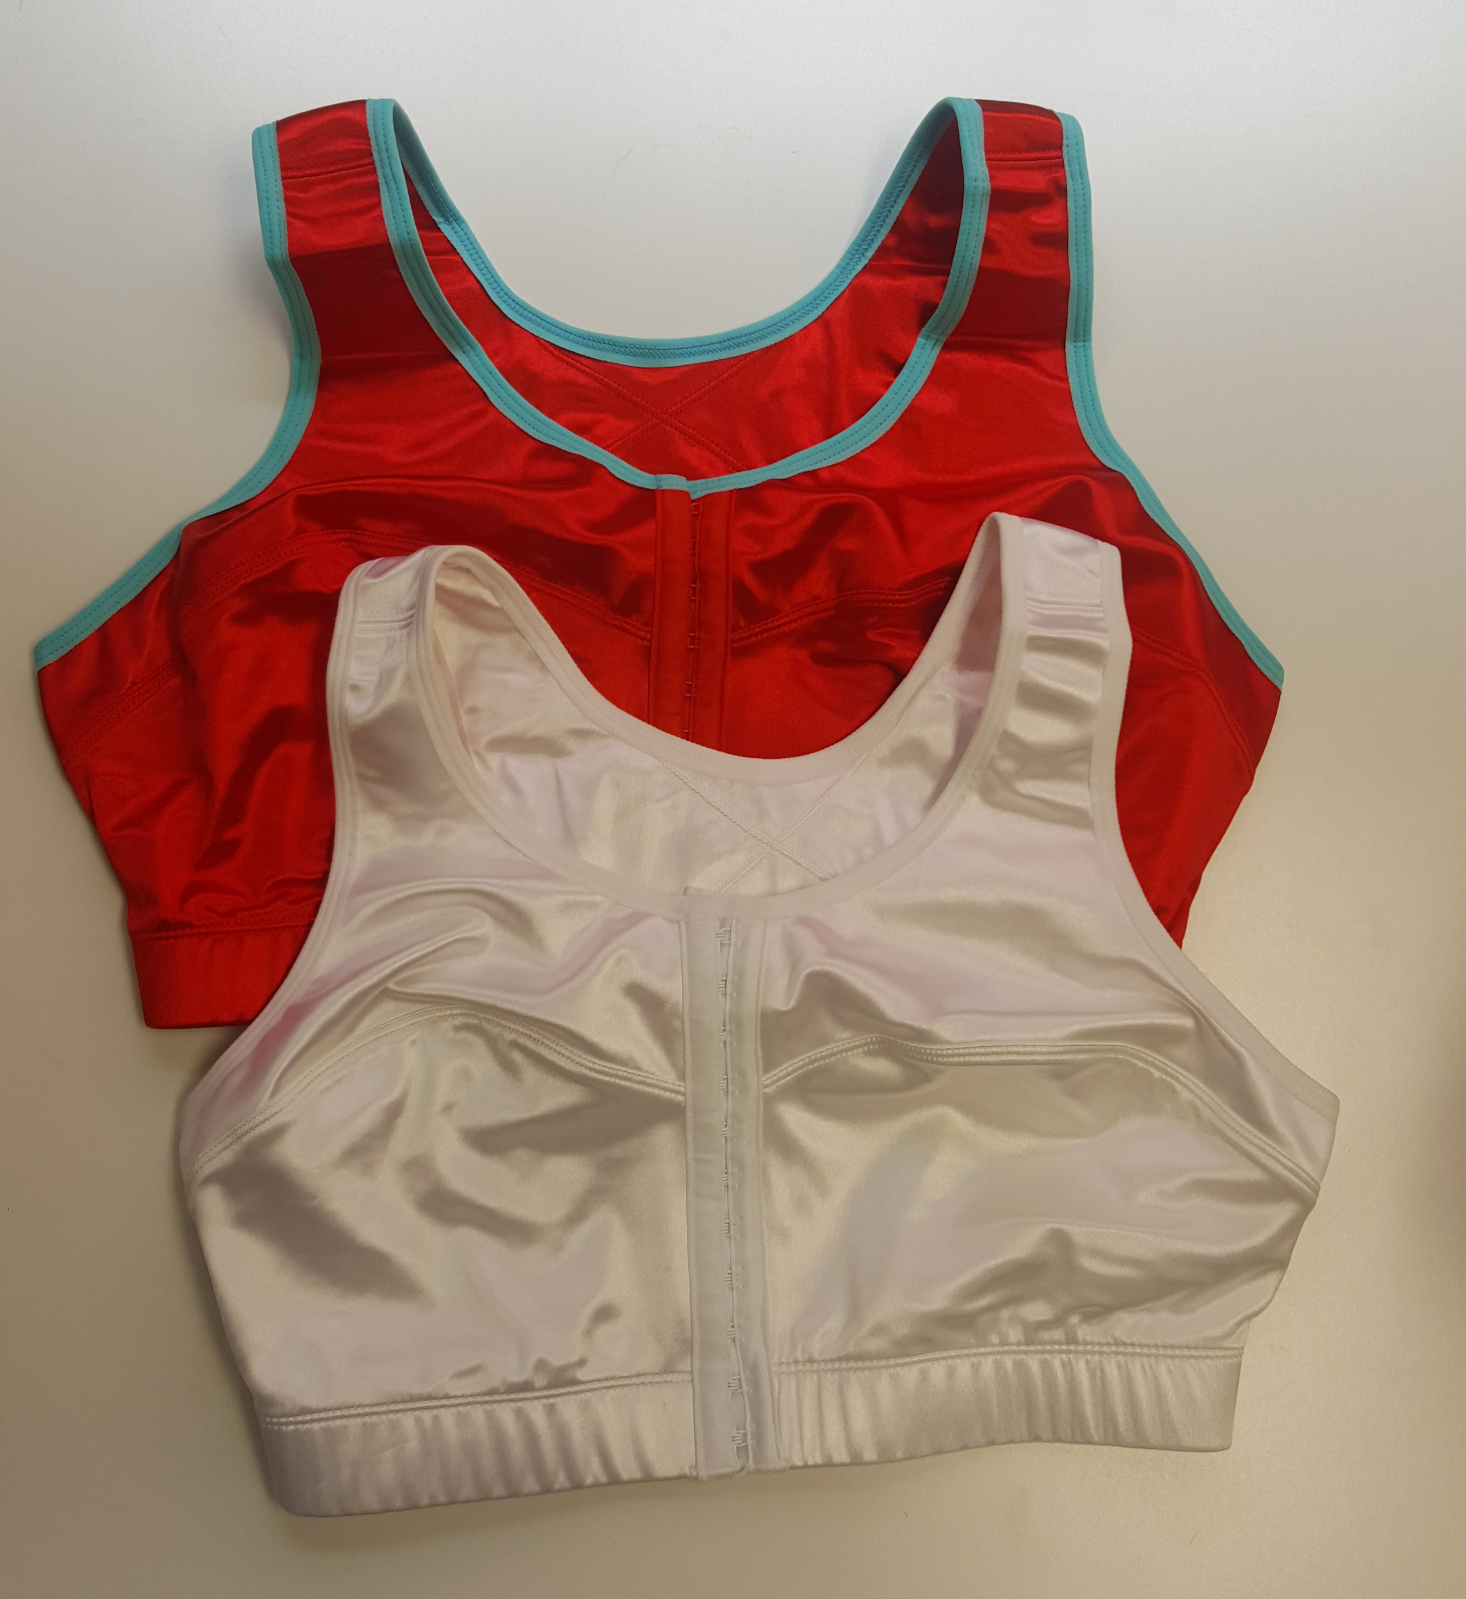 ENELL SPORTS BRA 2 PACK